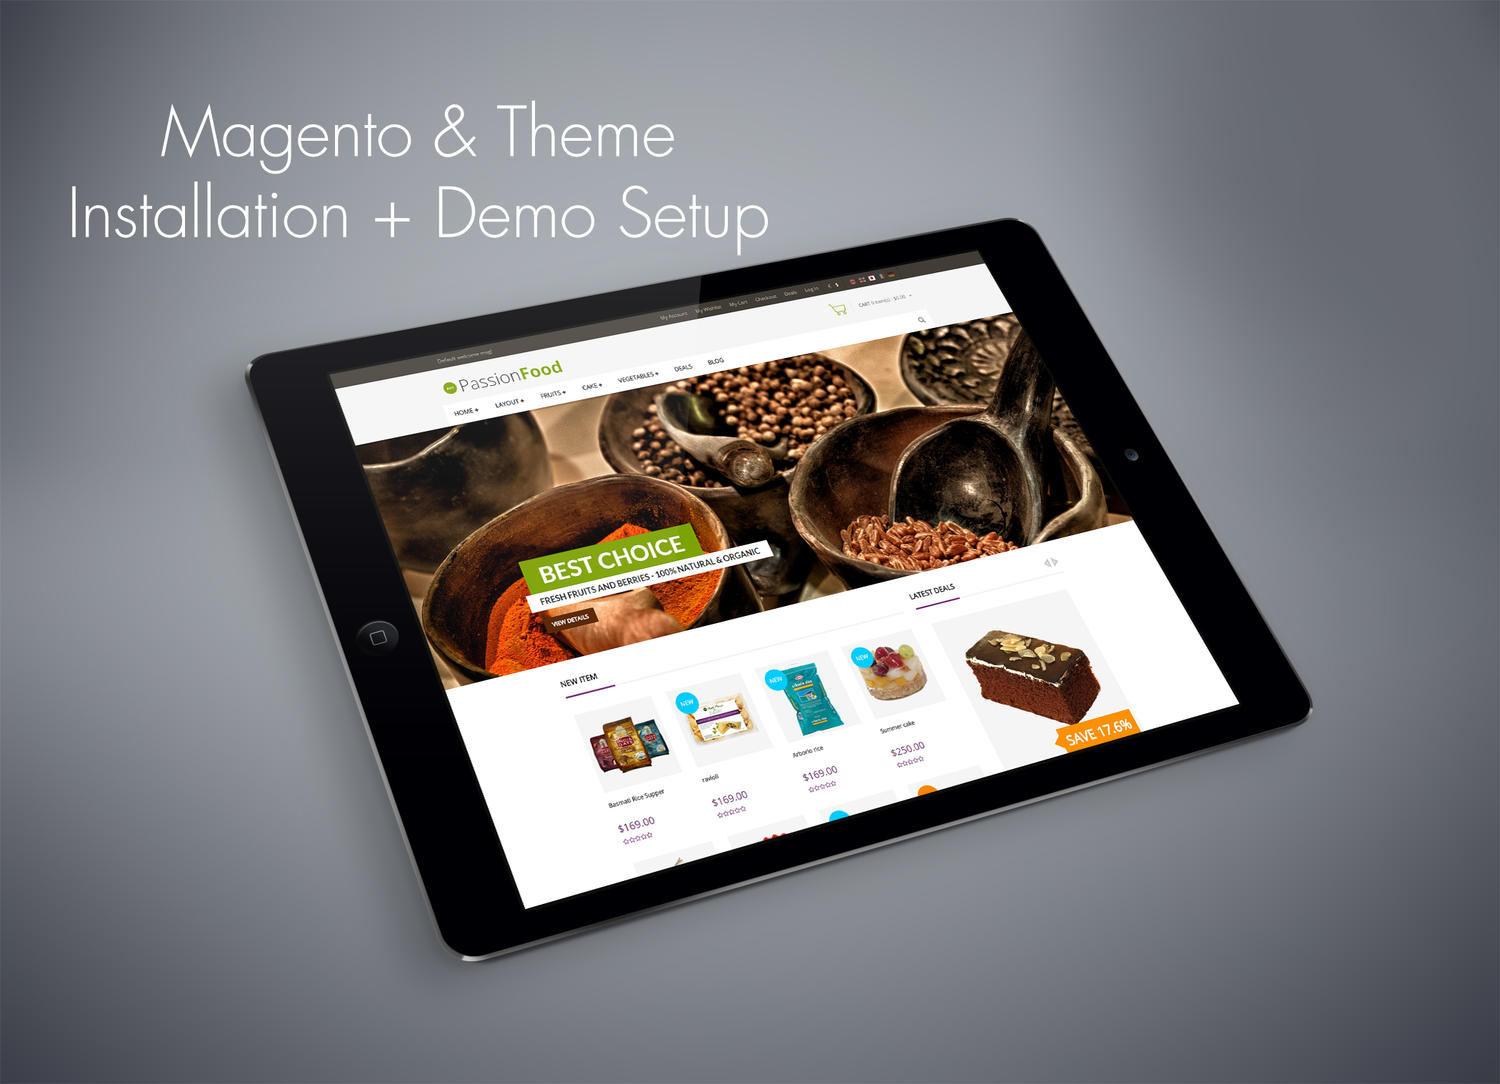 Magento & ThemeForest Theme Installation Plus Demo Setup by sandroo - 68143